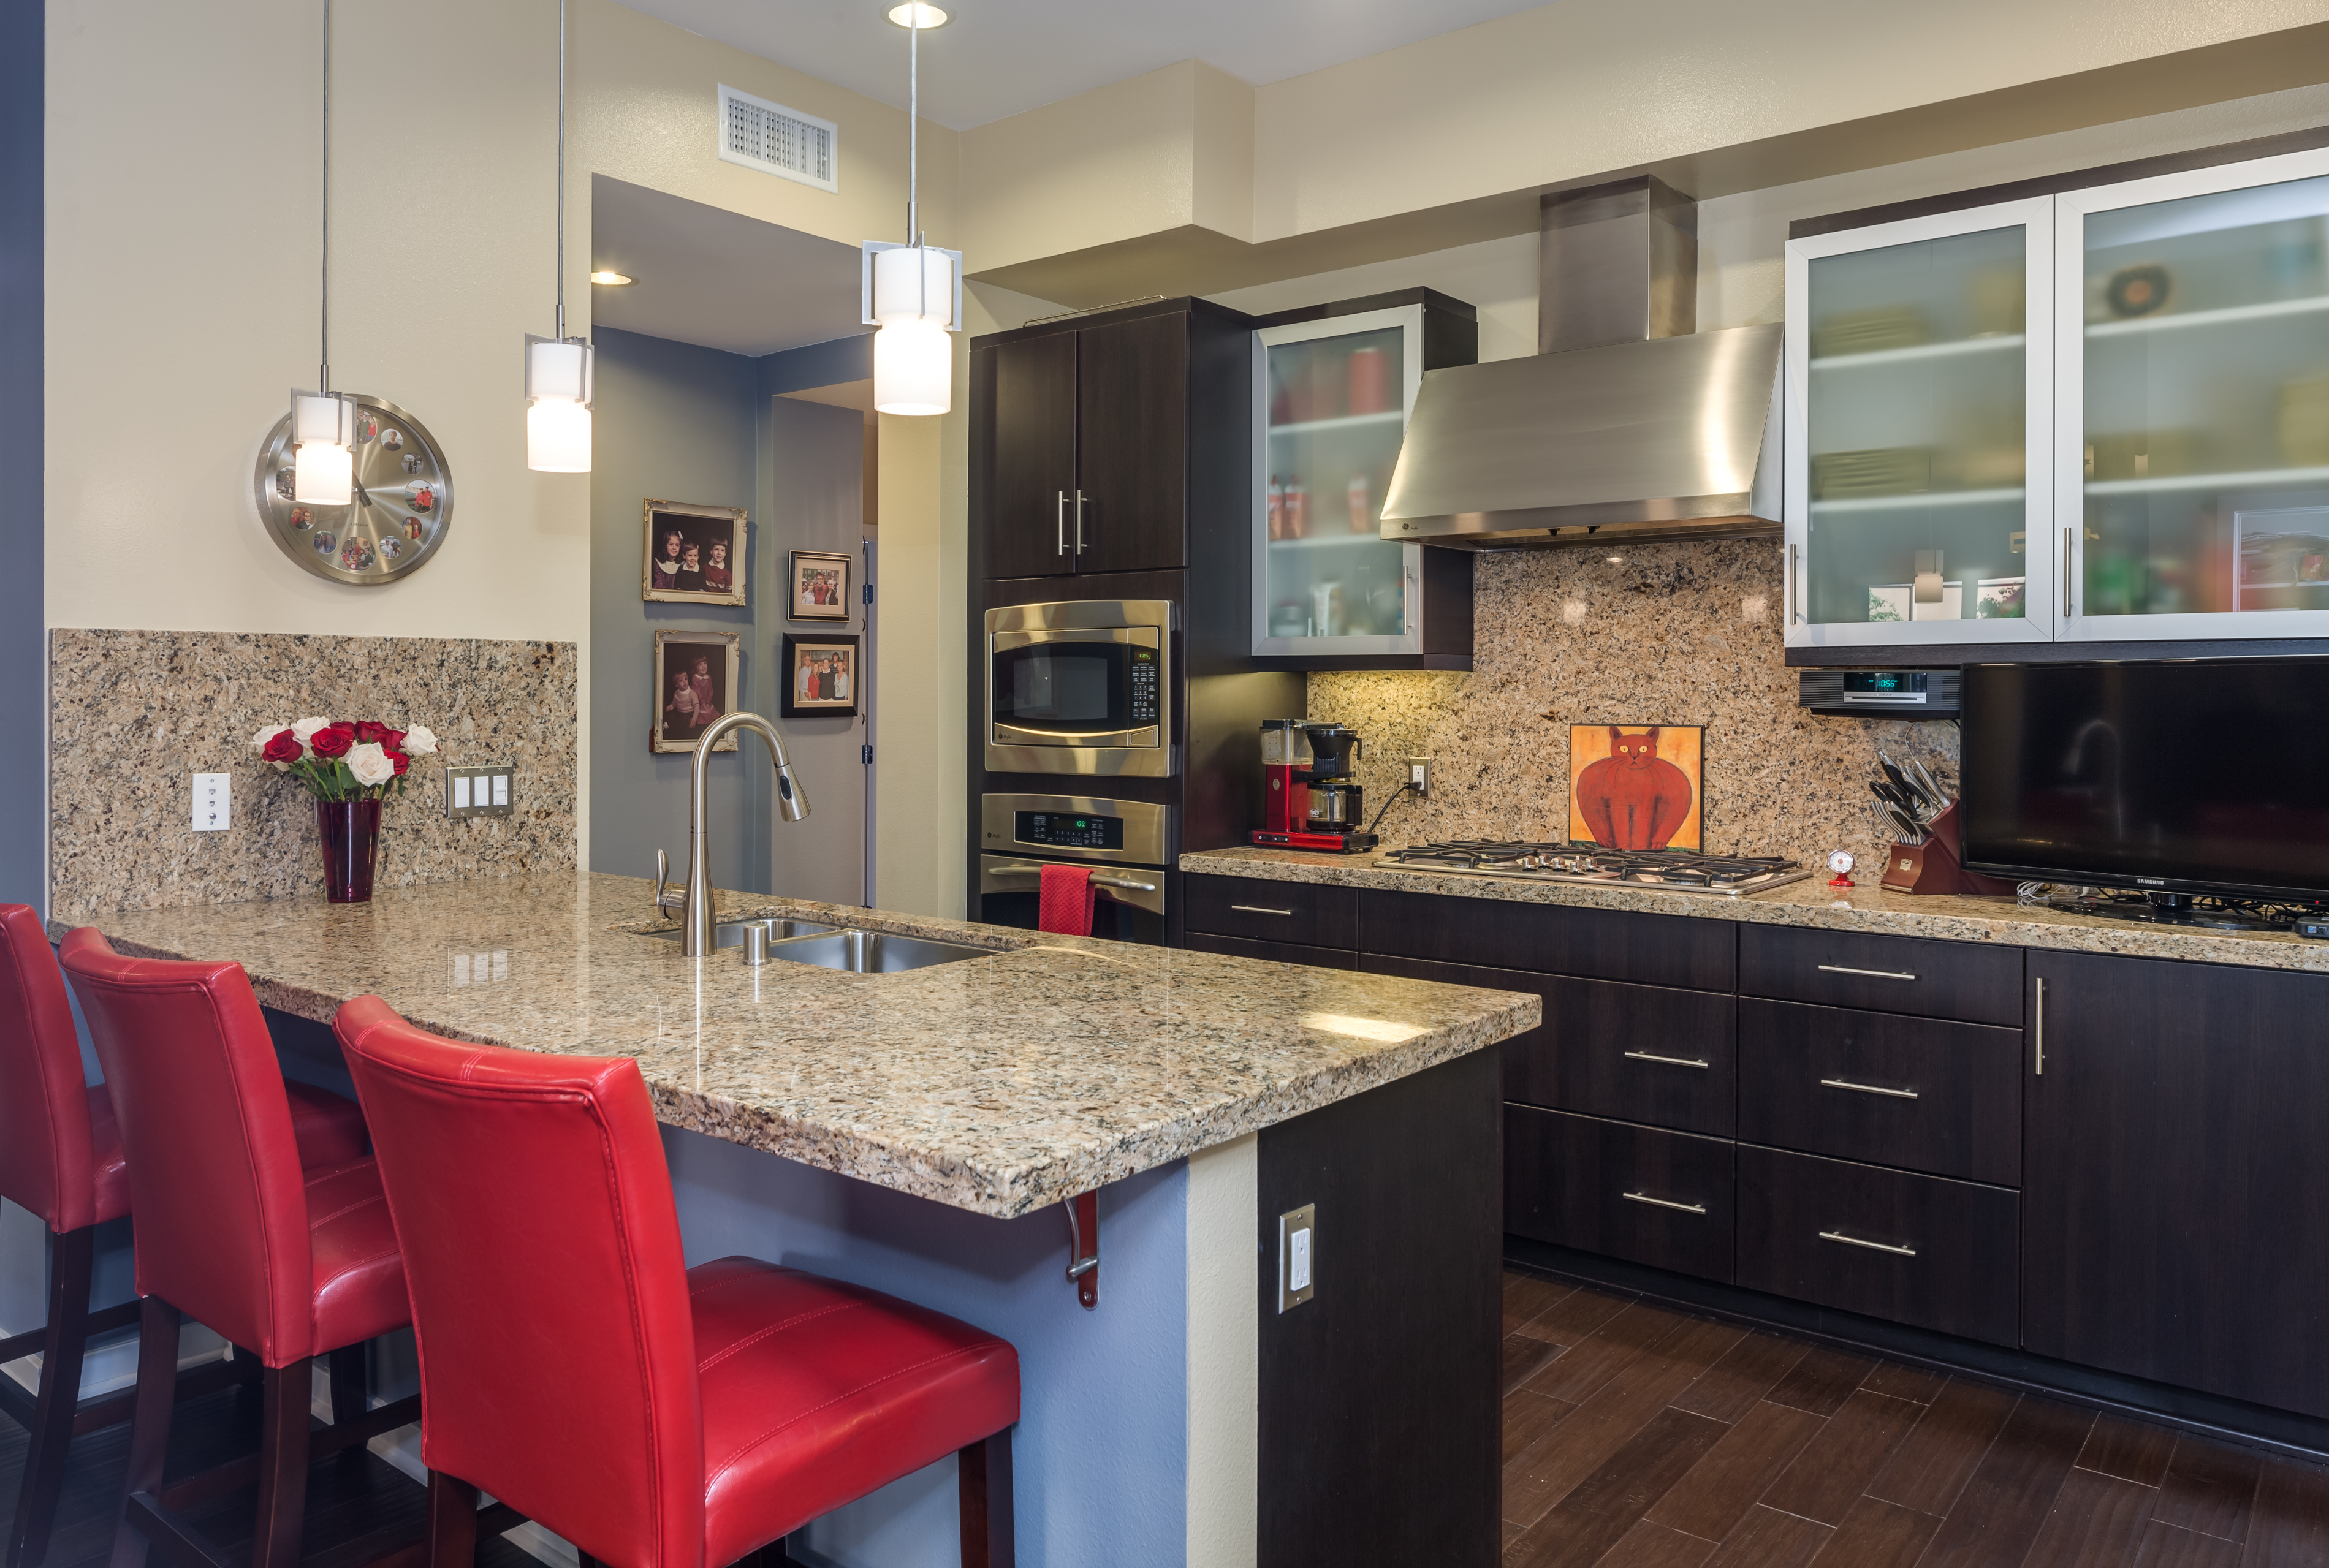 Watermarke Condo For Sale In Irvine The Souss 233 Group